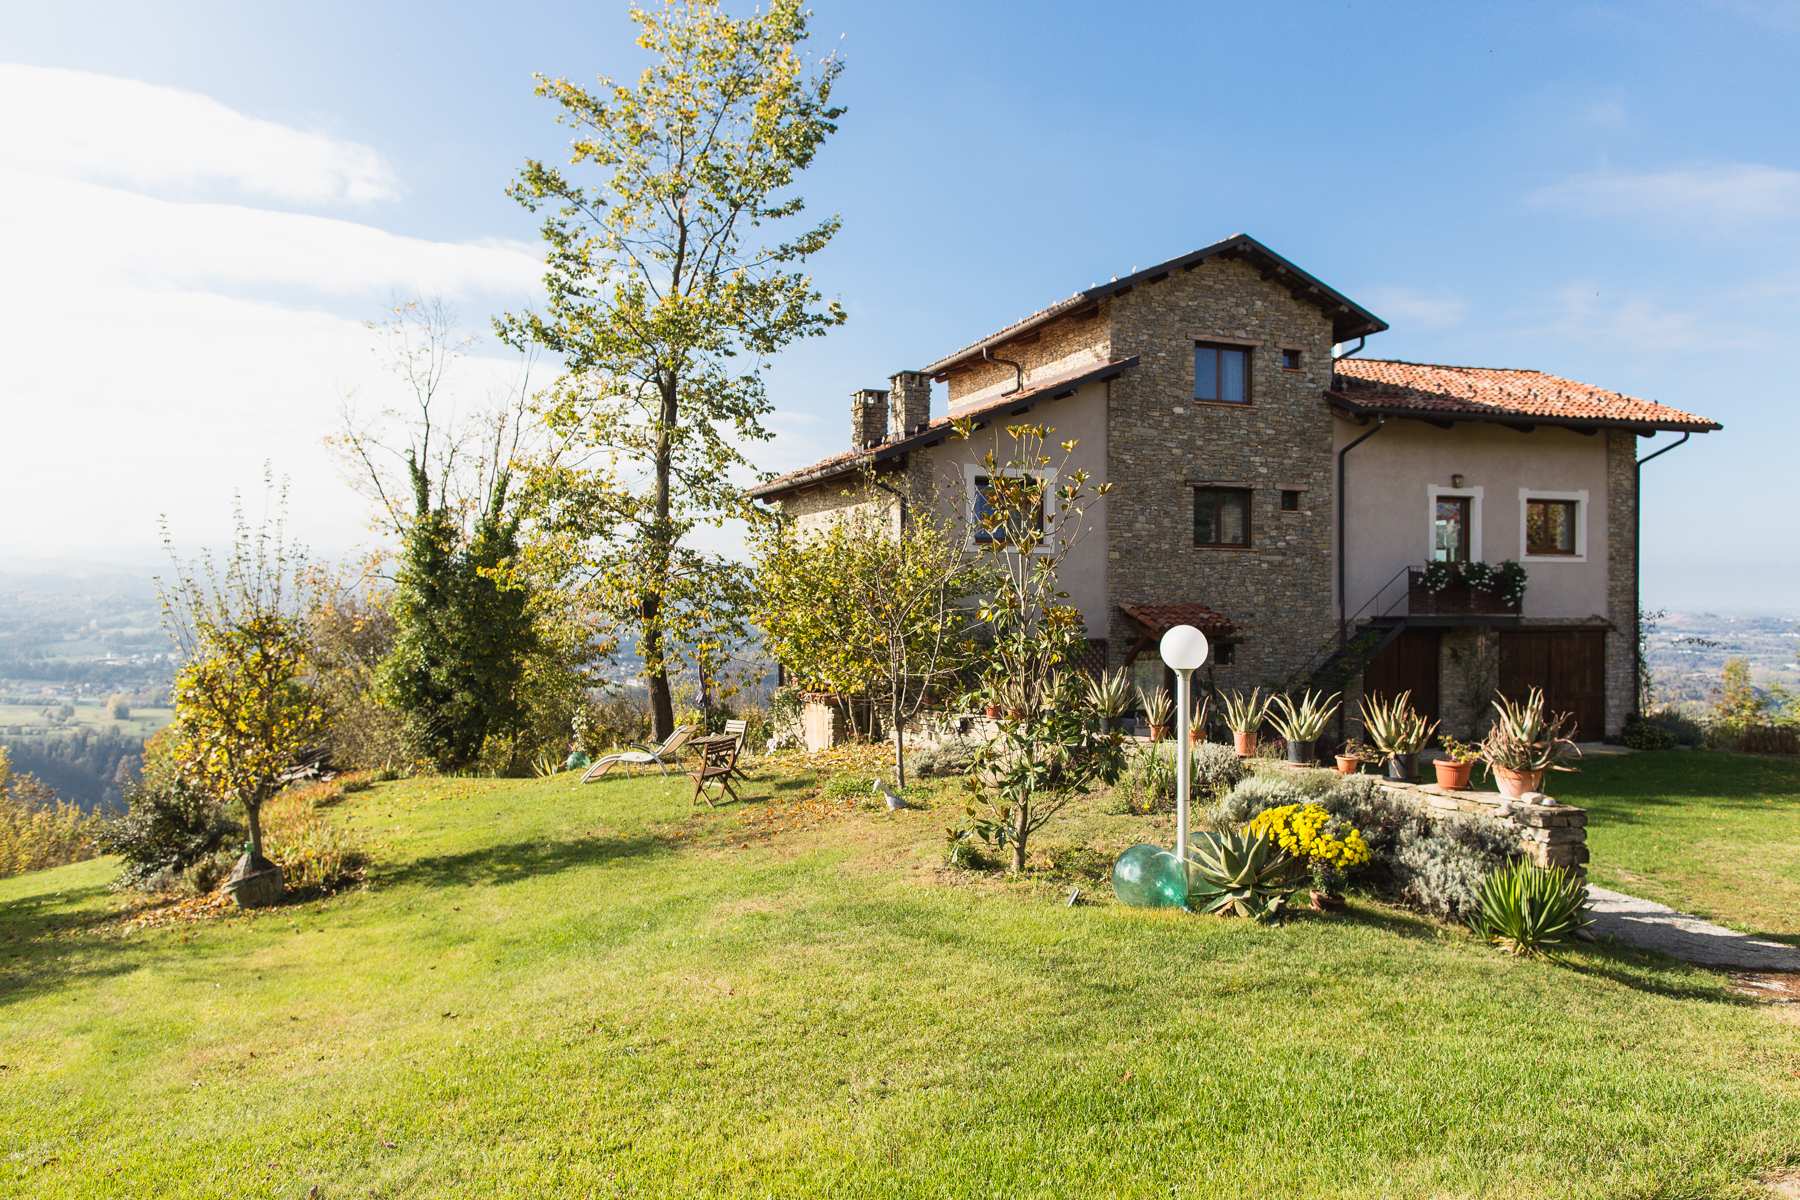 Cozy Country Home overlooking the Langhe